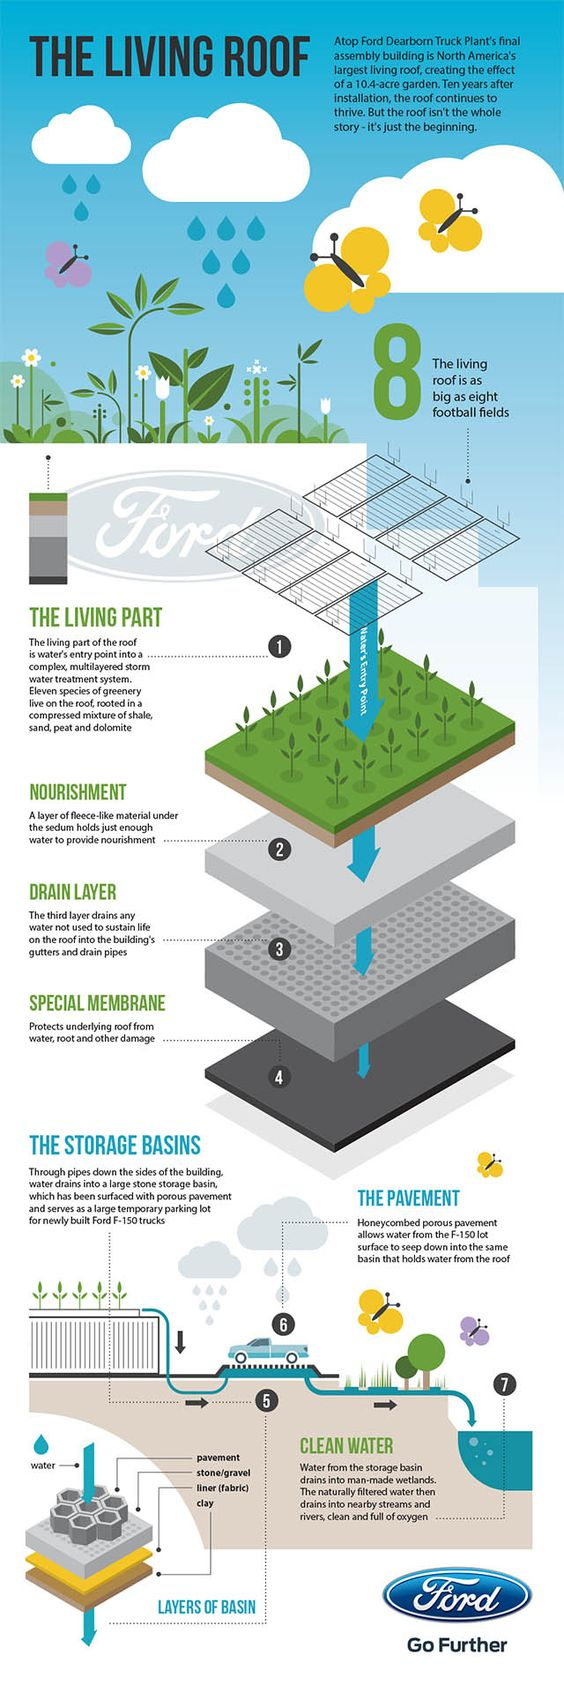 This infographic shows how the largest green roof in North America benefits the environment.